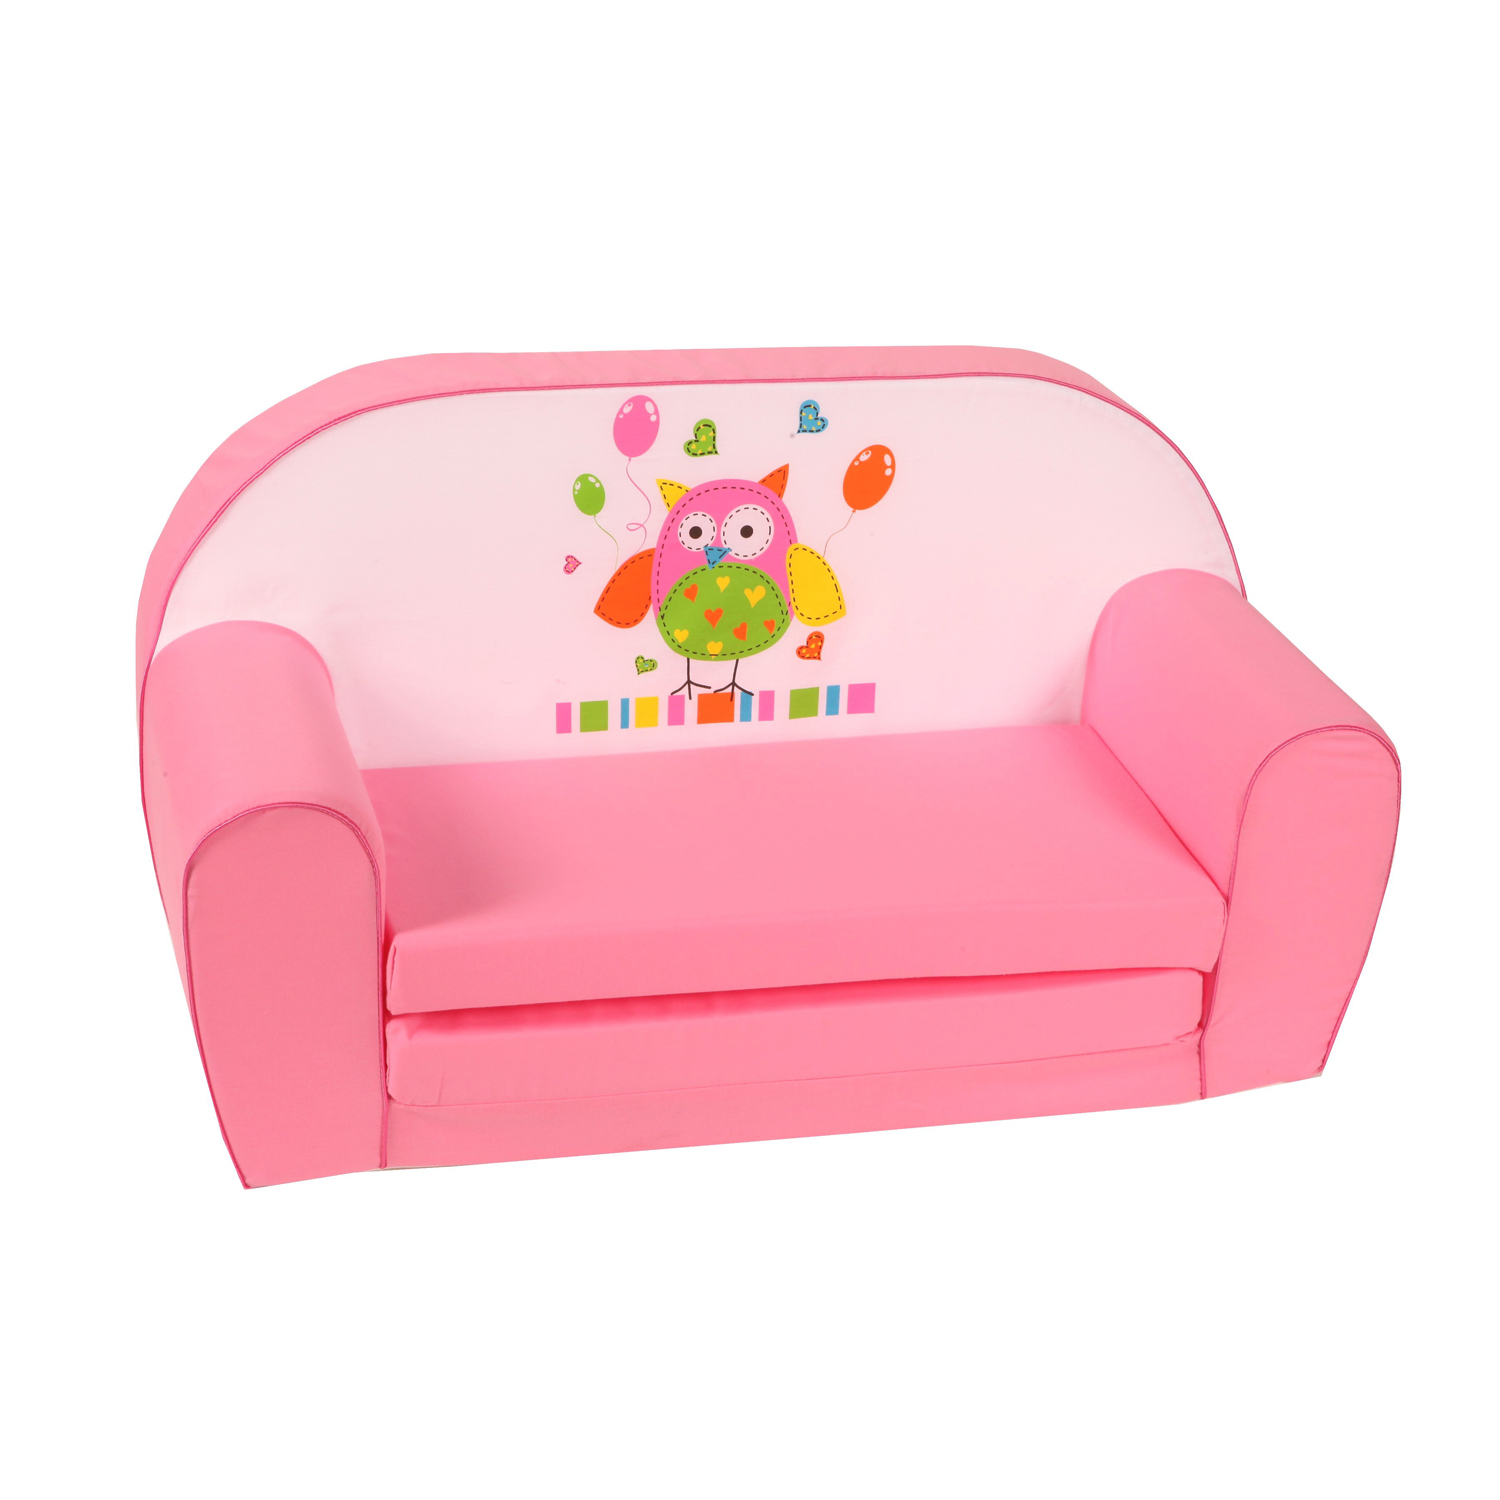 knorr baby gmbh kinder schlafsofa eule rosa online kaufen. Black Bedroom Furniture Sets. Home Design Ideas